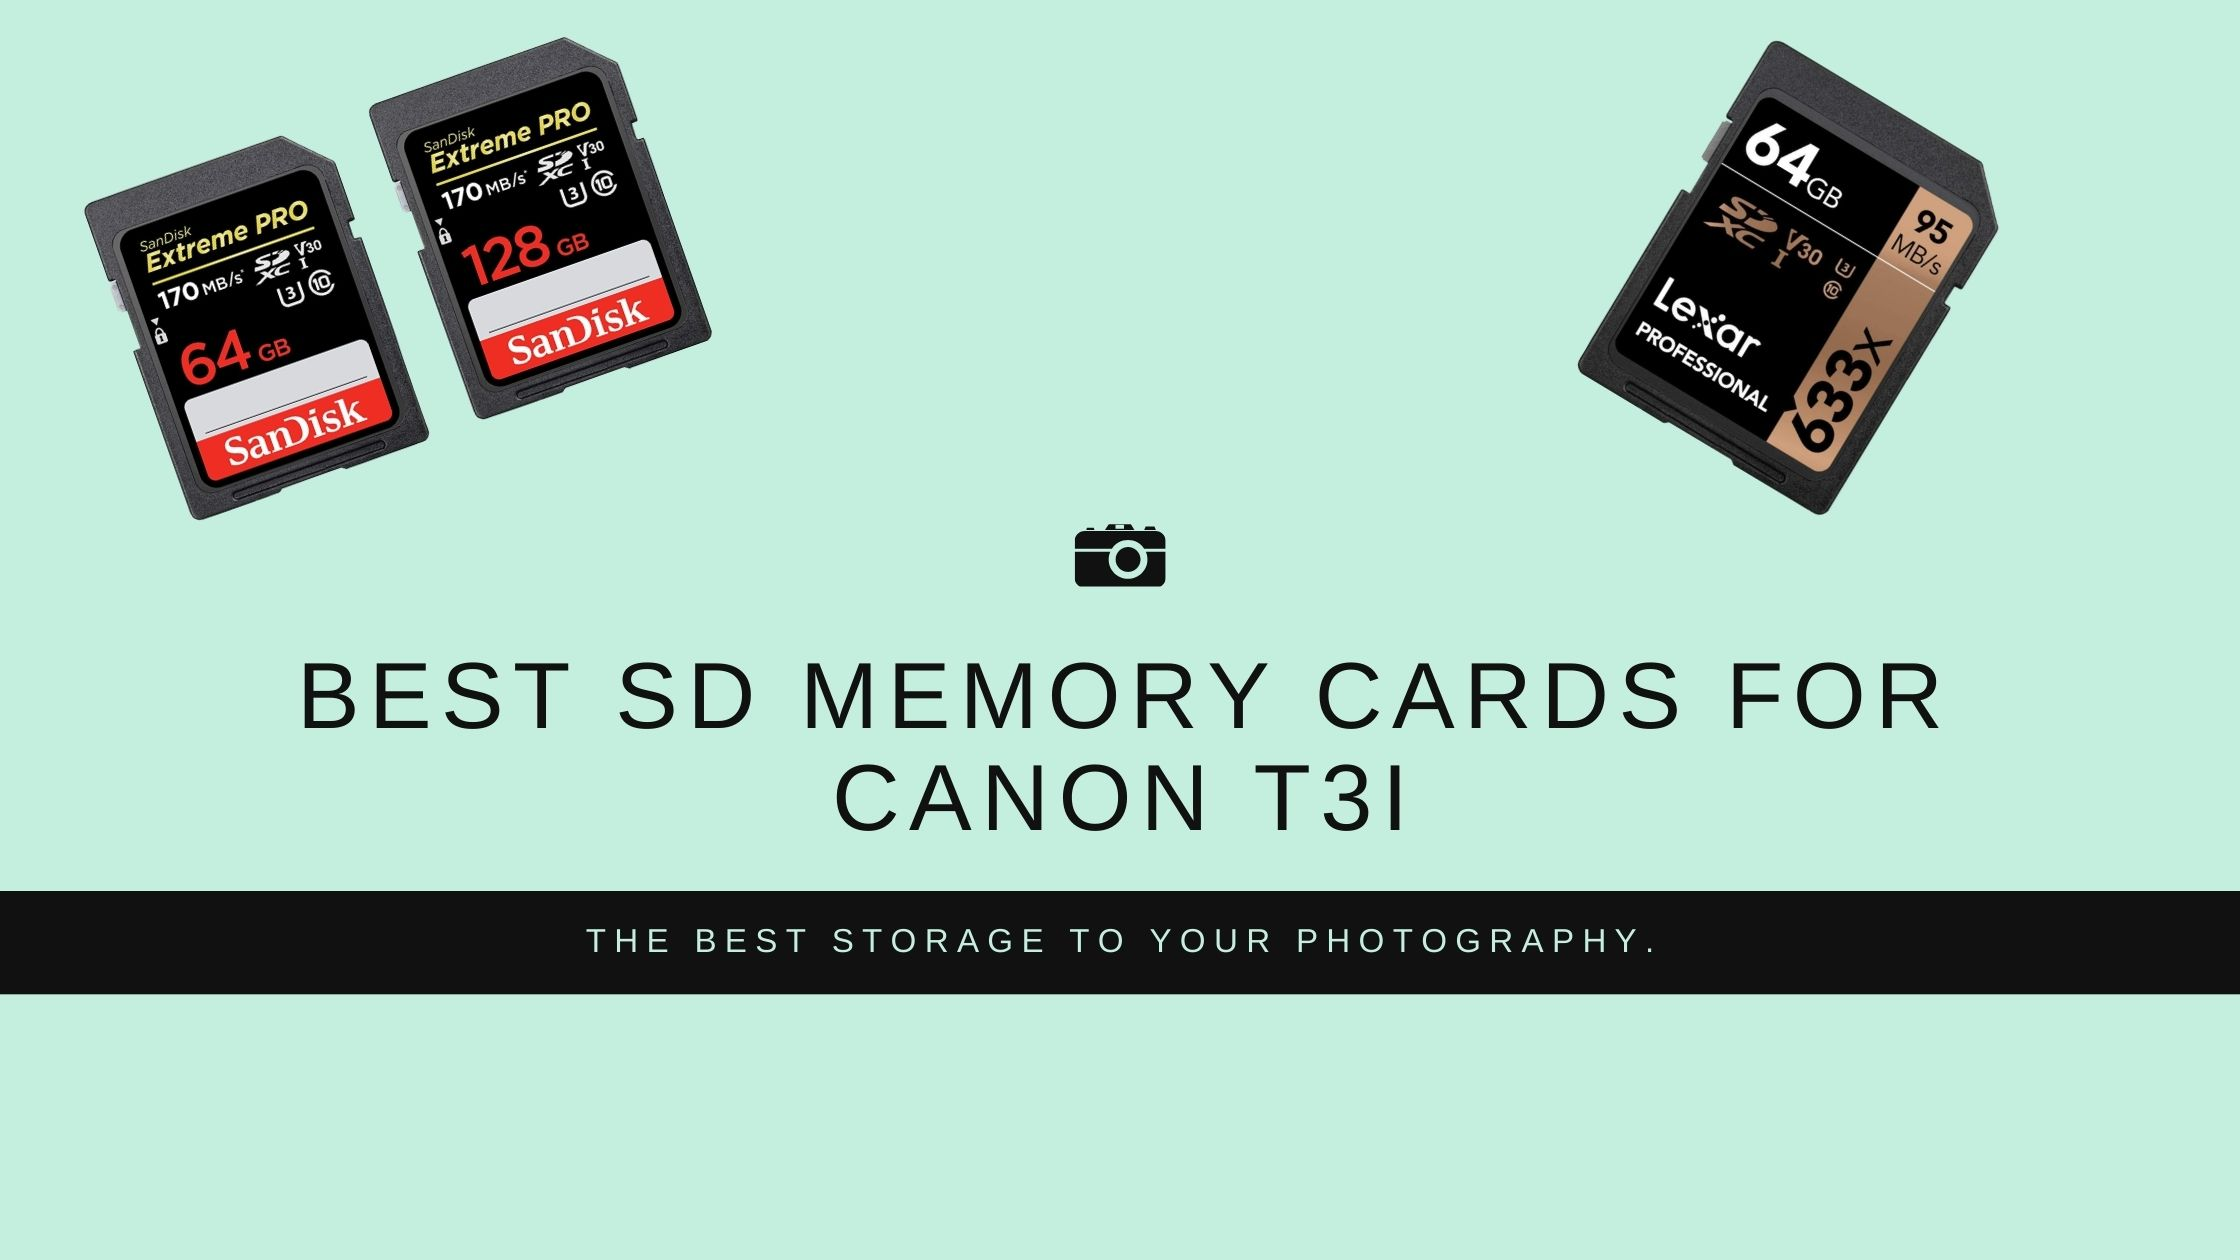 Best Sd Memory Cards for Canon t3i